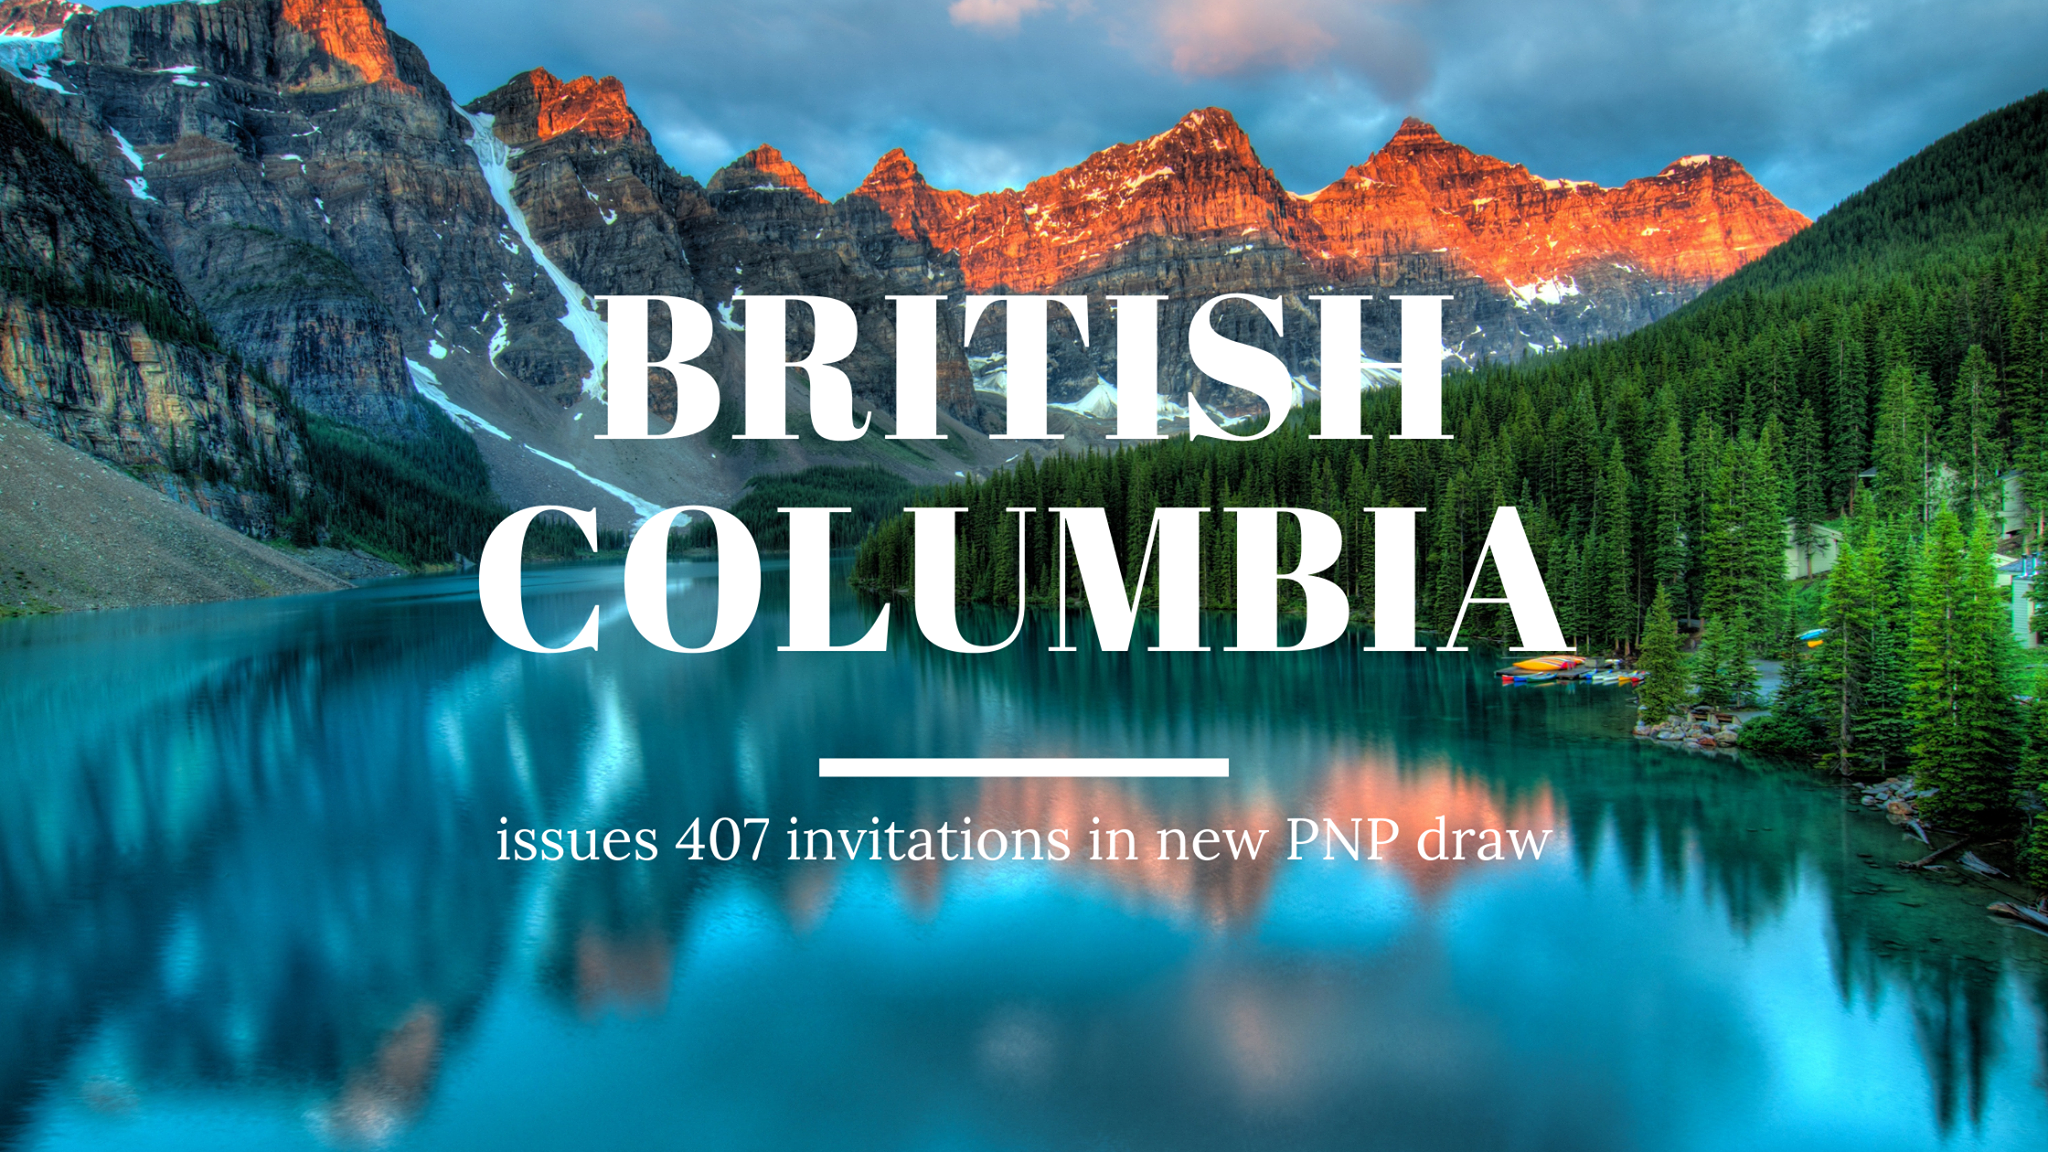 British Columbia issues 407 invitations in new PNP draw